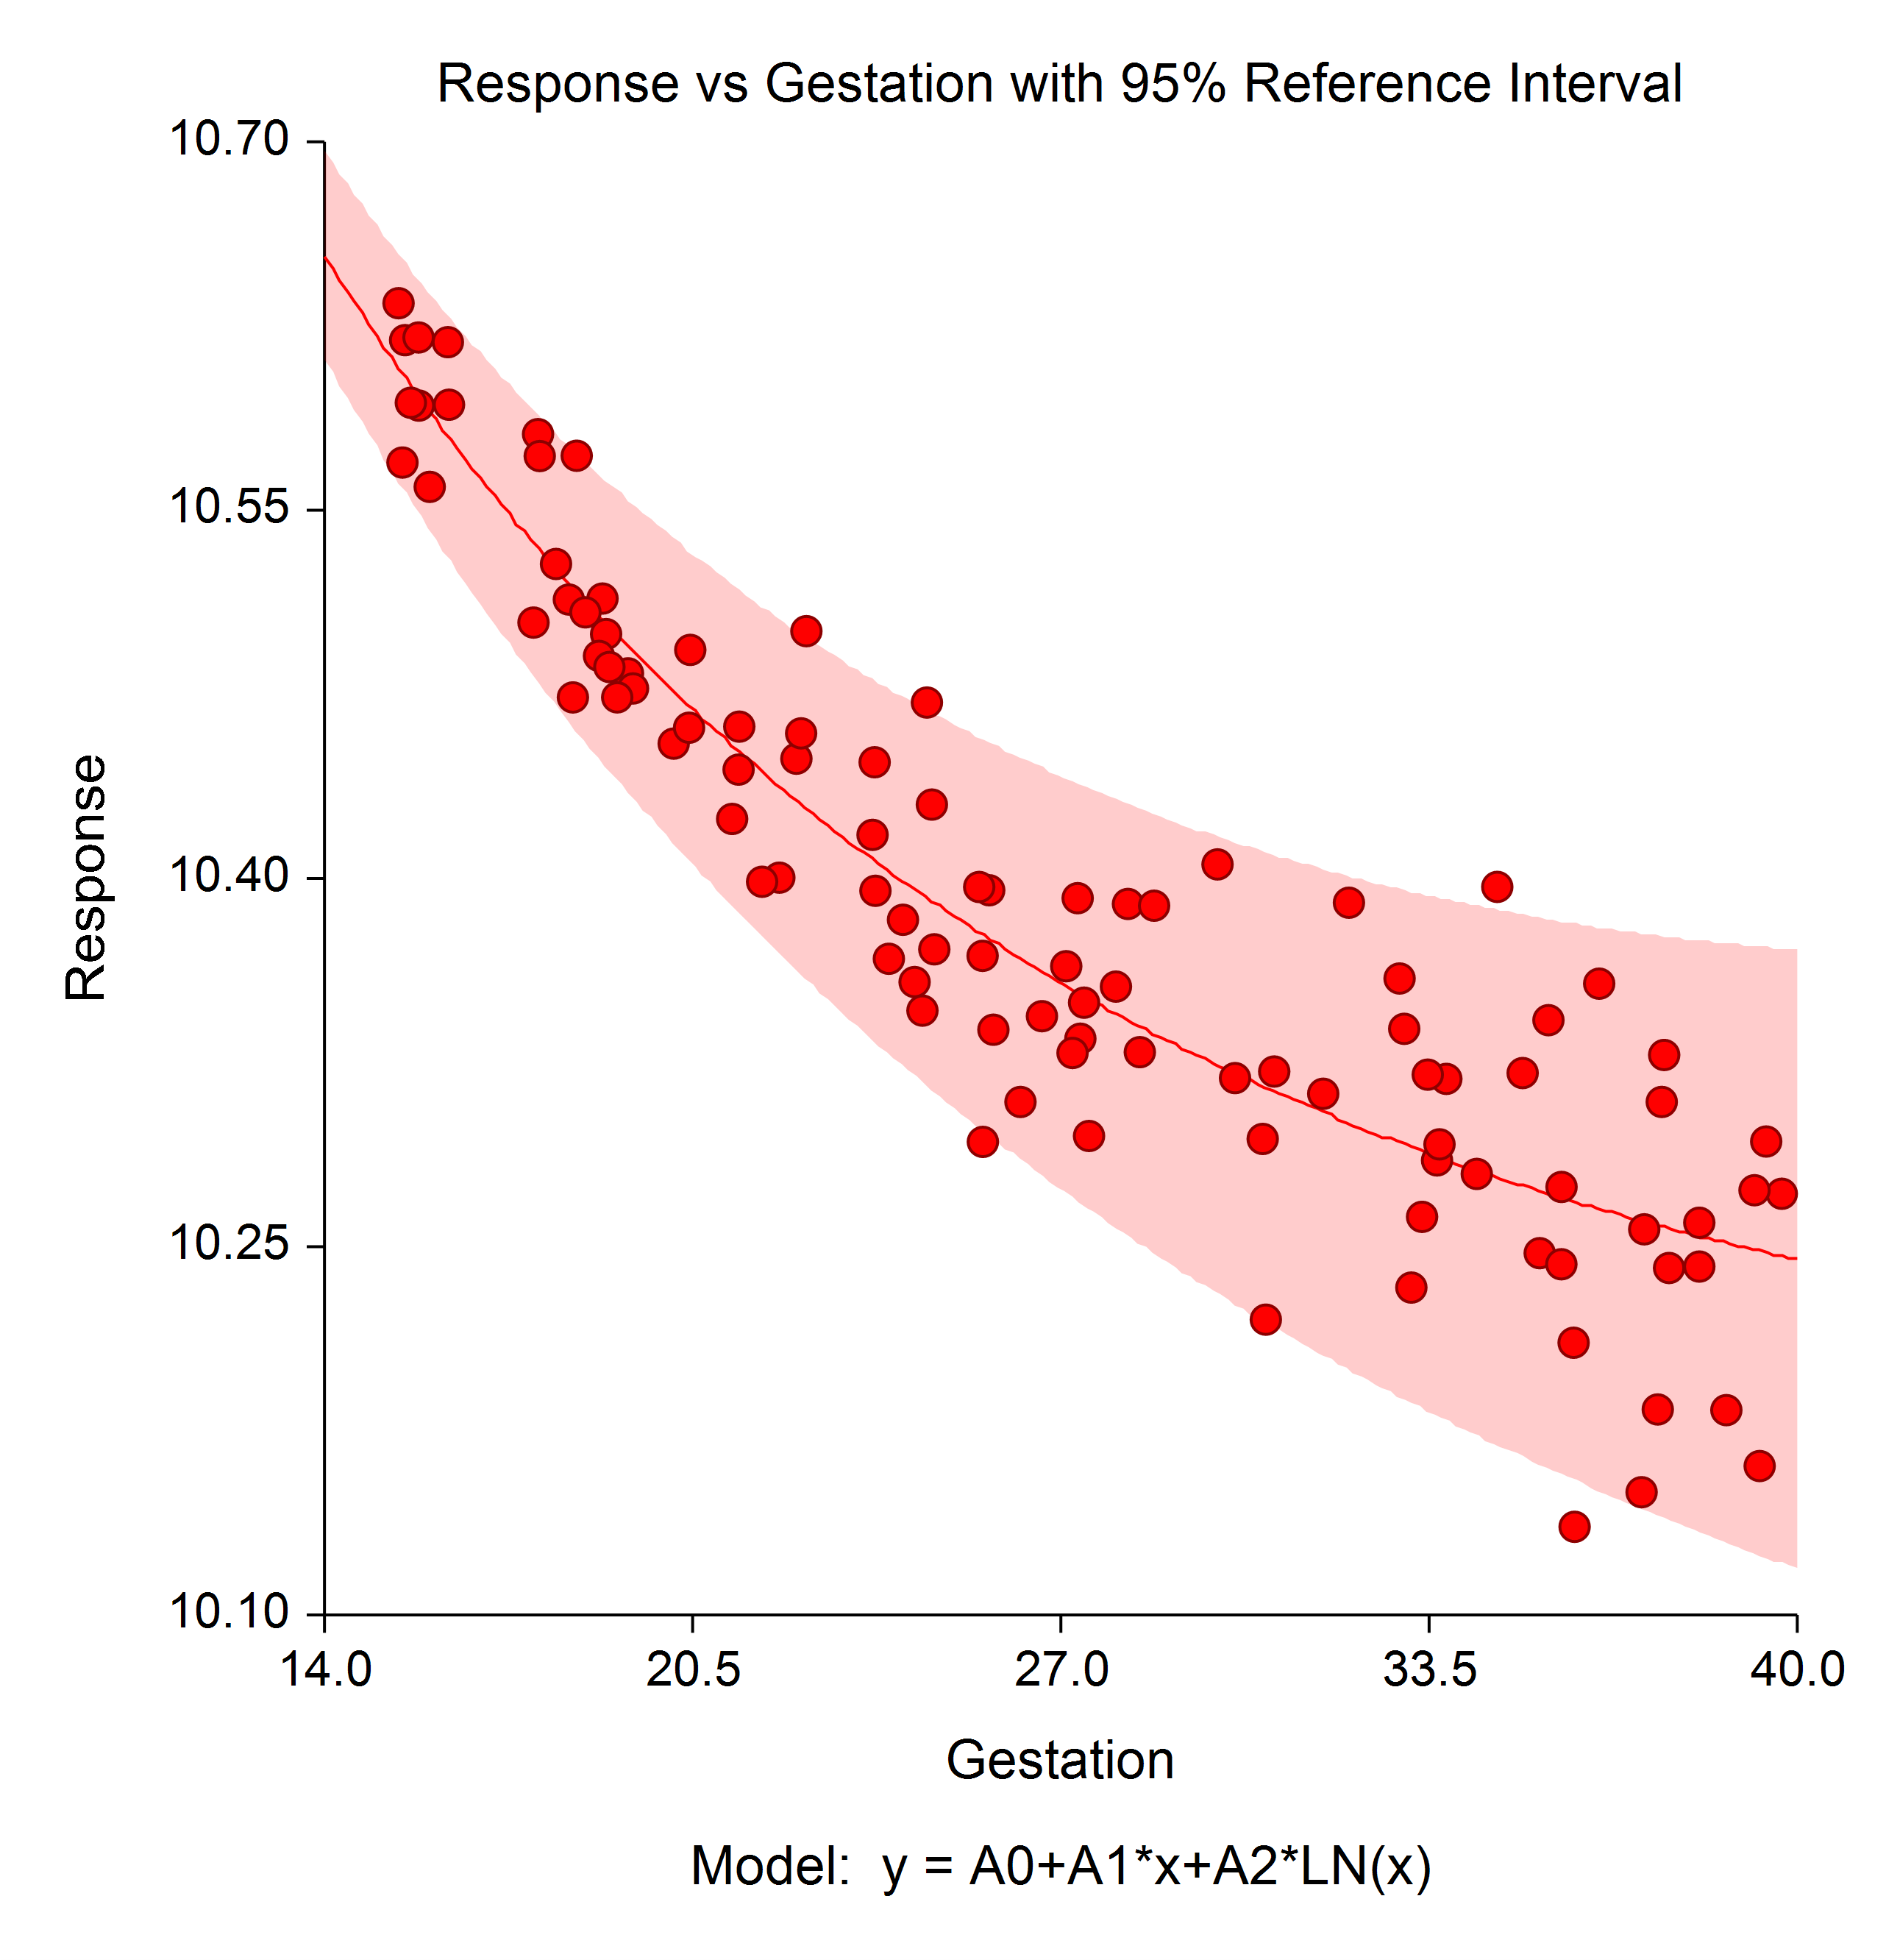 Reference Interval Plot